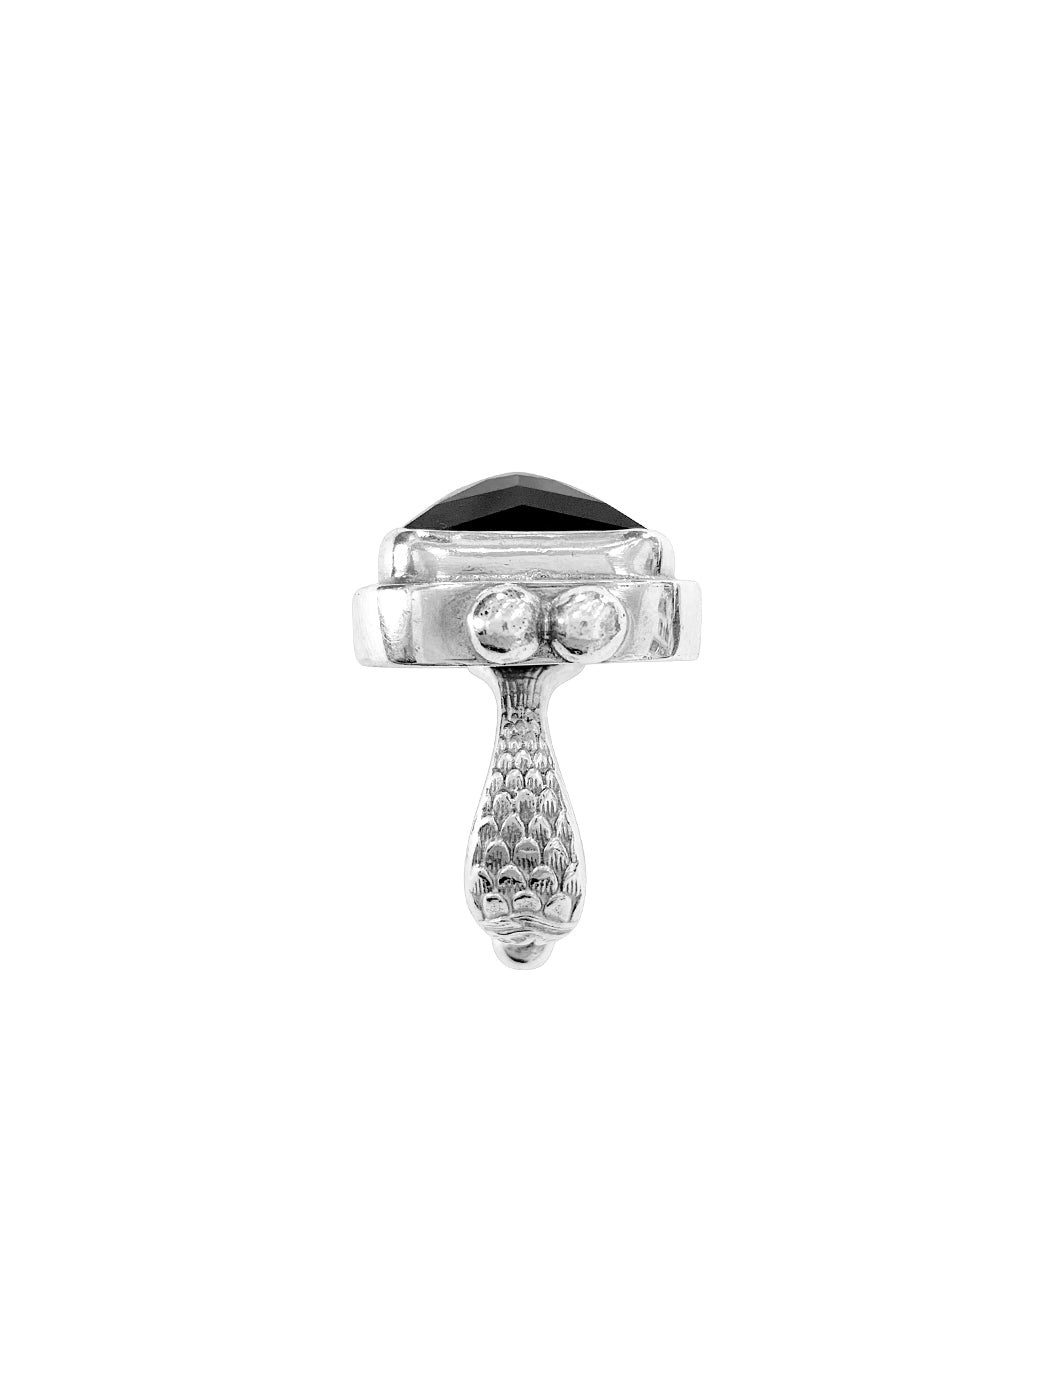 Fiorina Jewellery Rectangle Cocktail Ring Black Onyx Fishband View